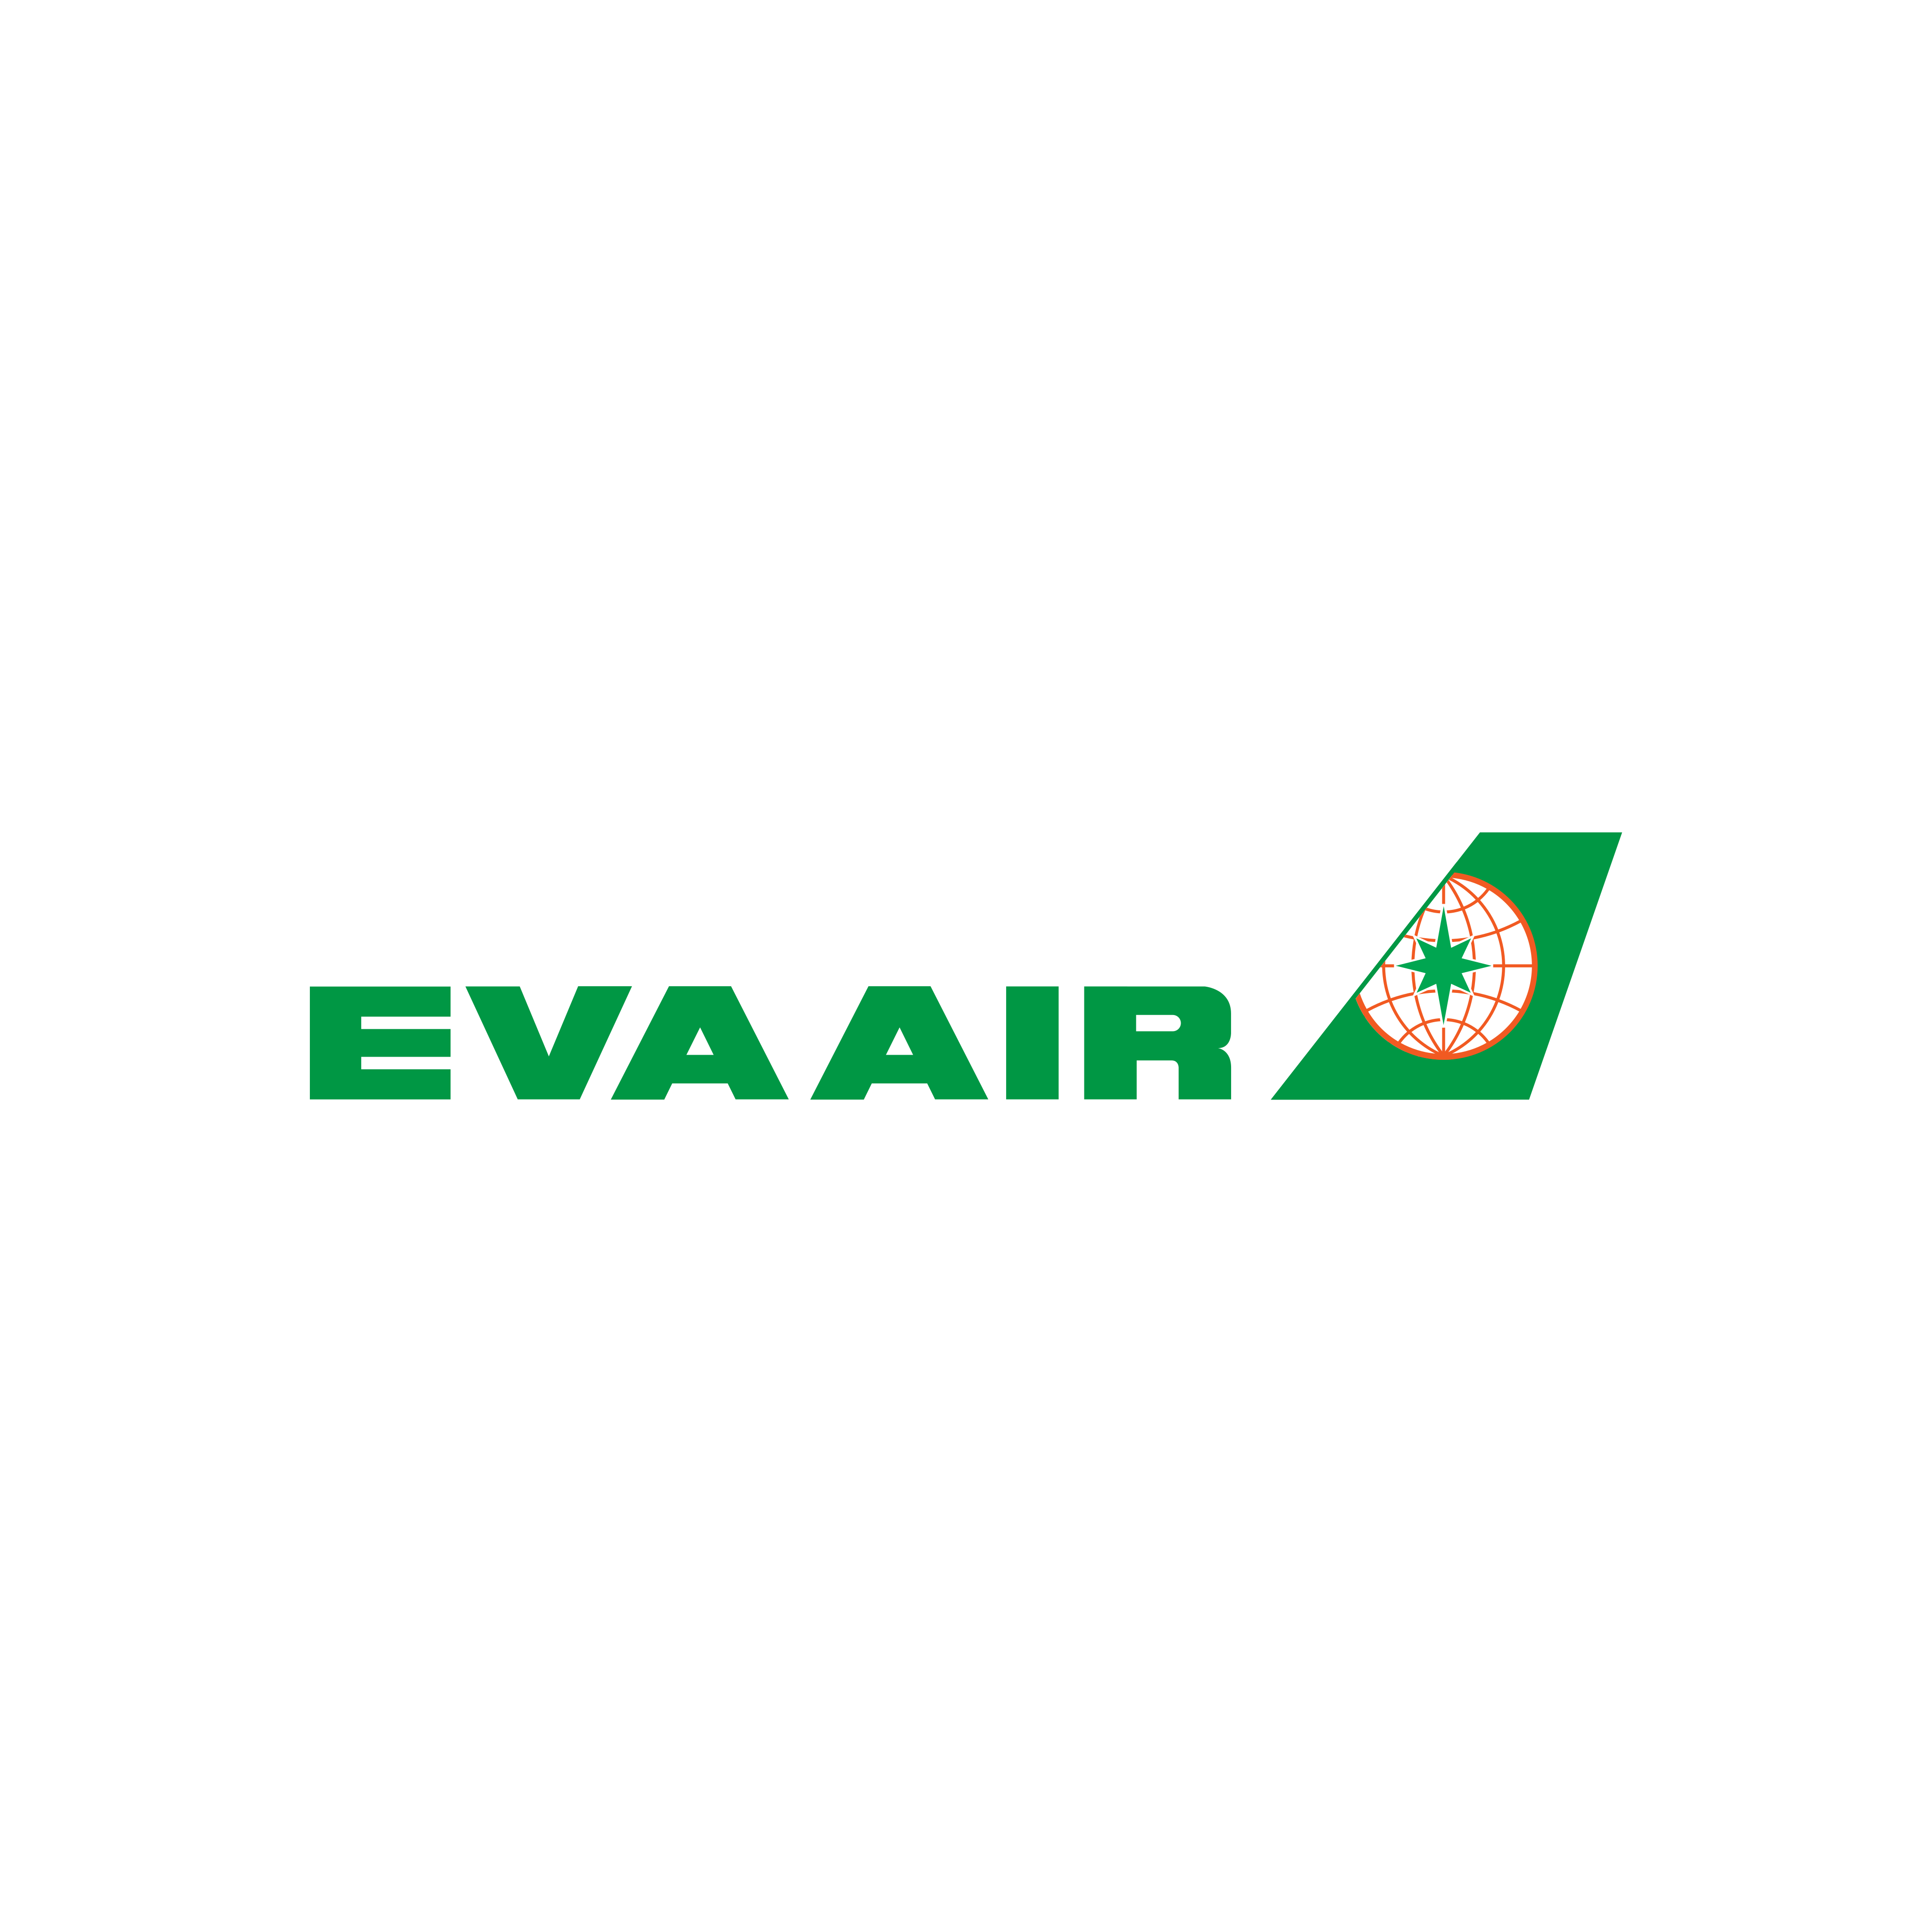 eva air logo 0 - EVA Air Logo